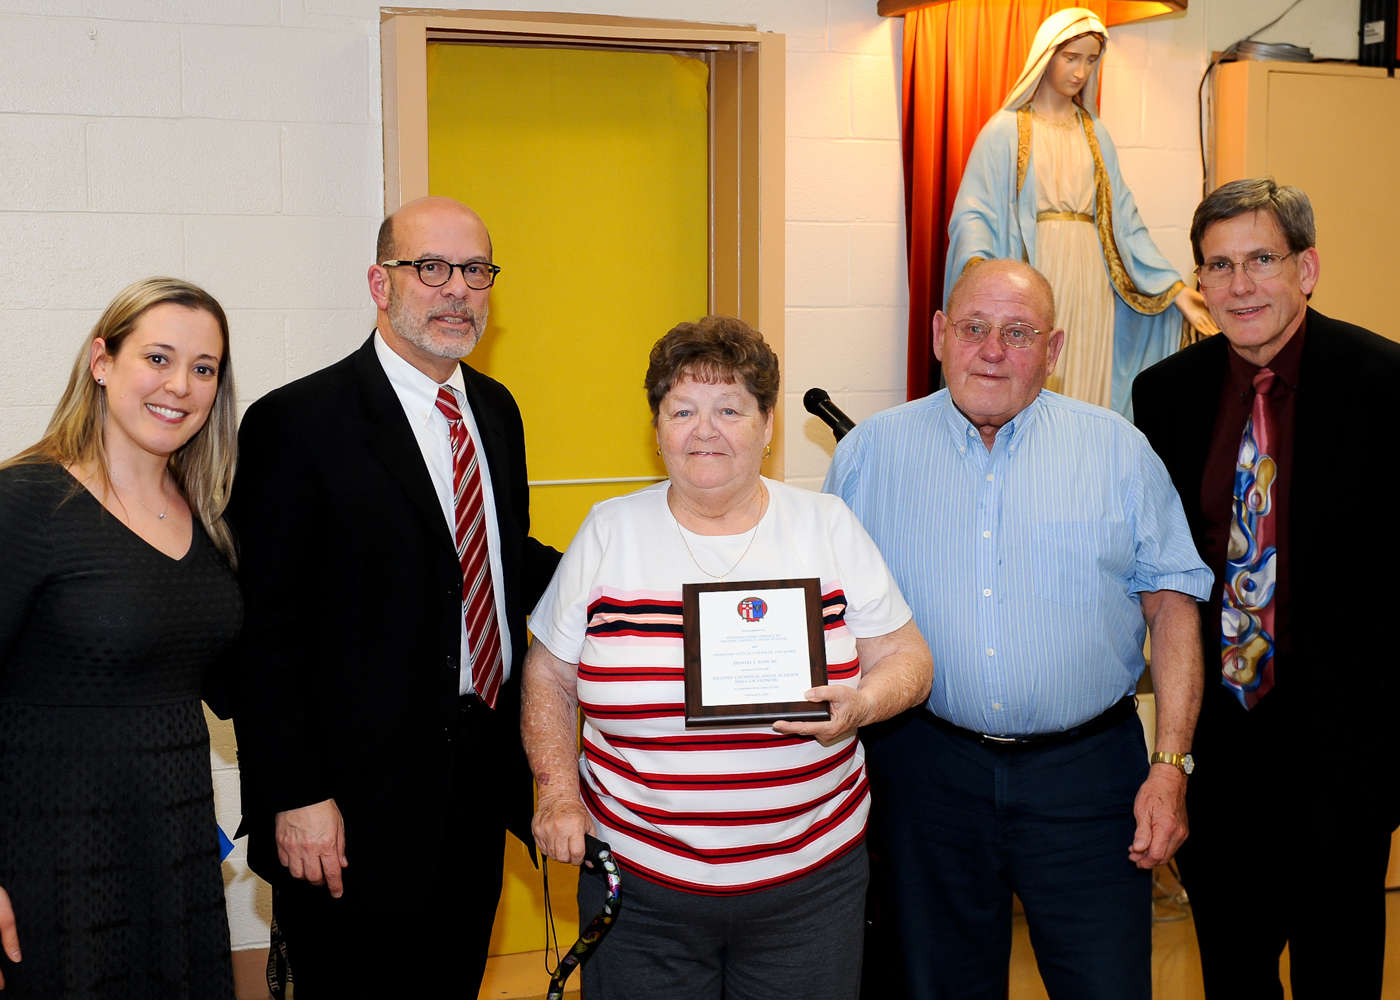 Violet M. (Smith) Bair '60 (center) and Benjamin J. Bair '60 (second from right) accept induction into the Delone Catholic Hall of Honor on behalf of their son, Daniel J. Bair '85.